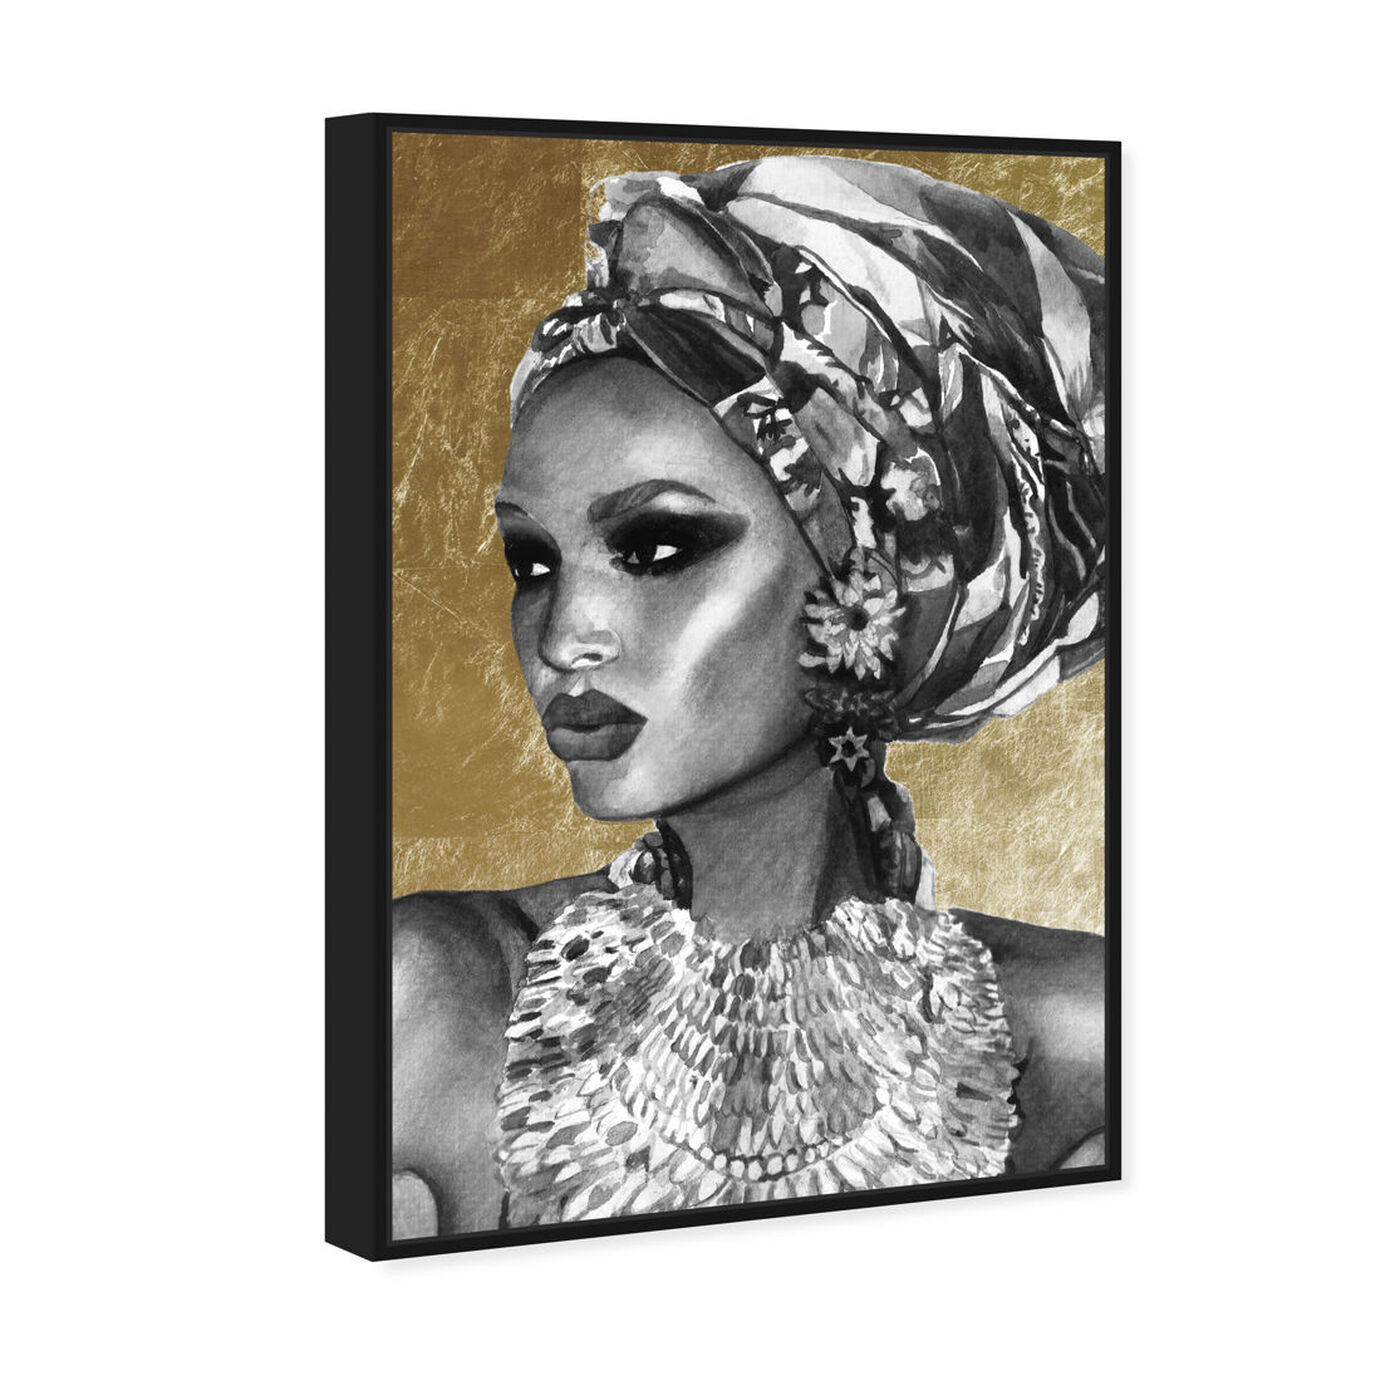 Angled view of Goddess of Nile featuring fashion and glam and portraits art.